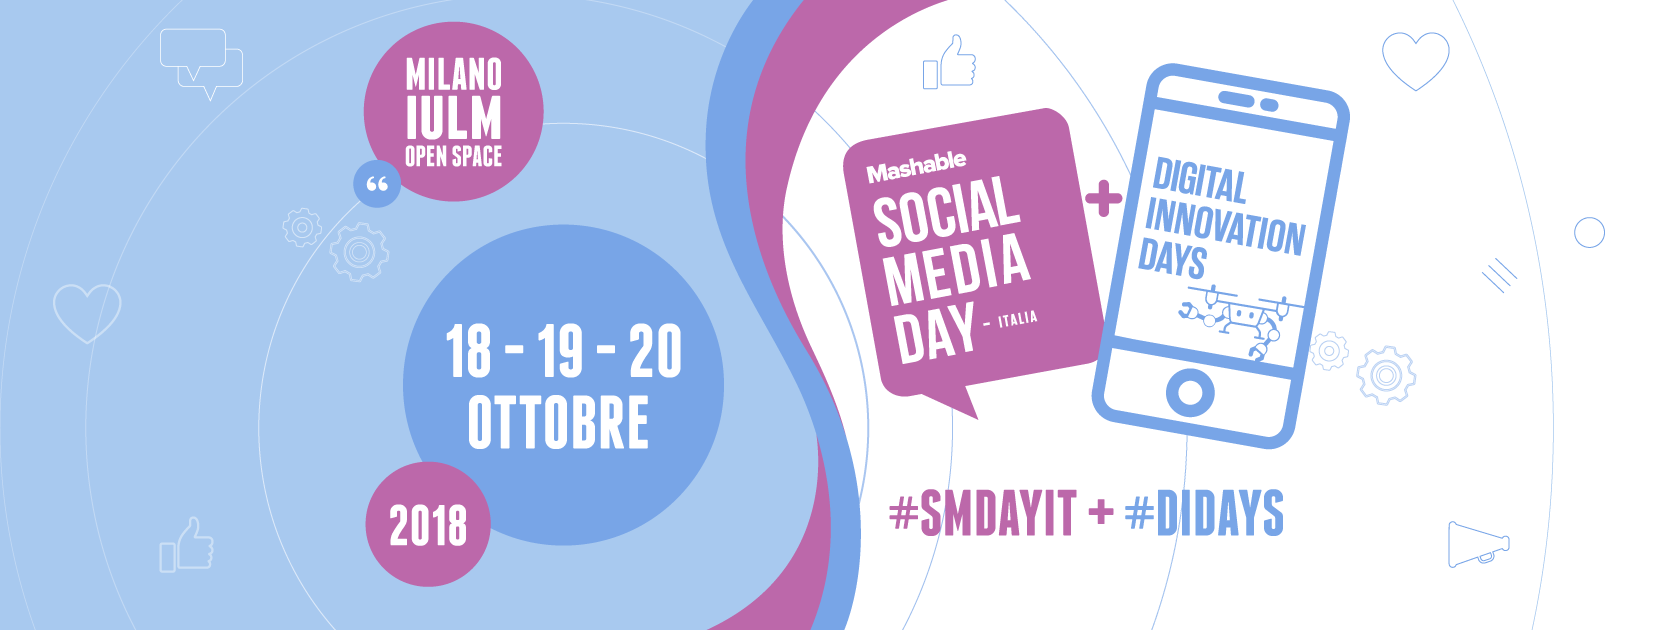 Mashable Social Media Day Italy: la partnership con Open Campus continua!